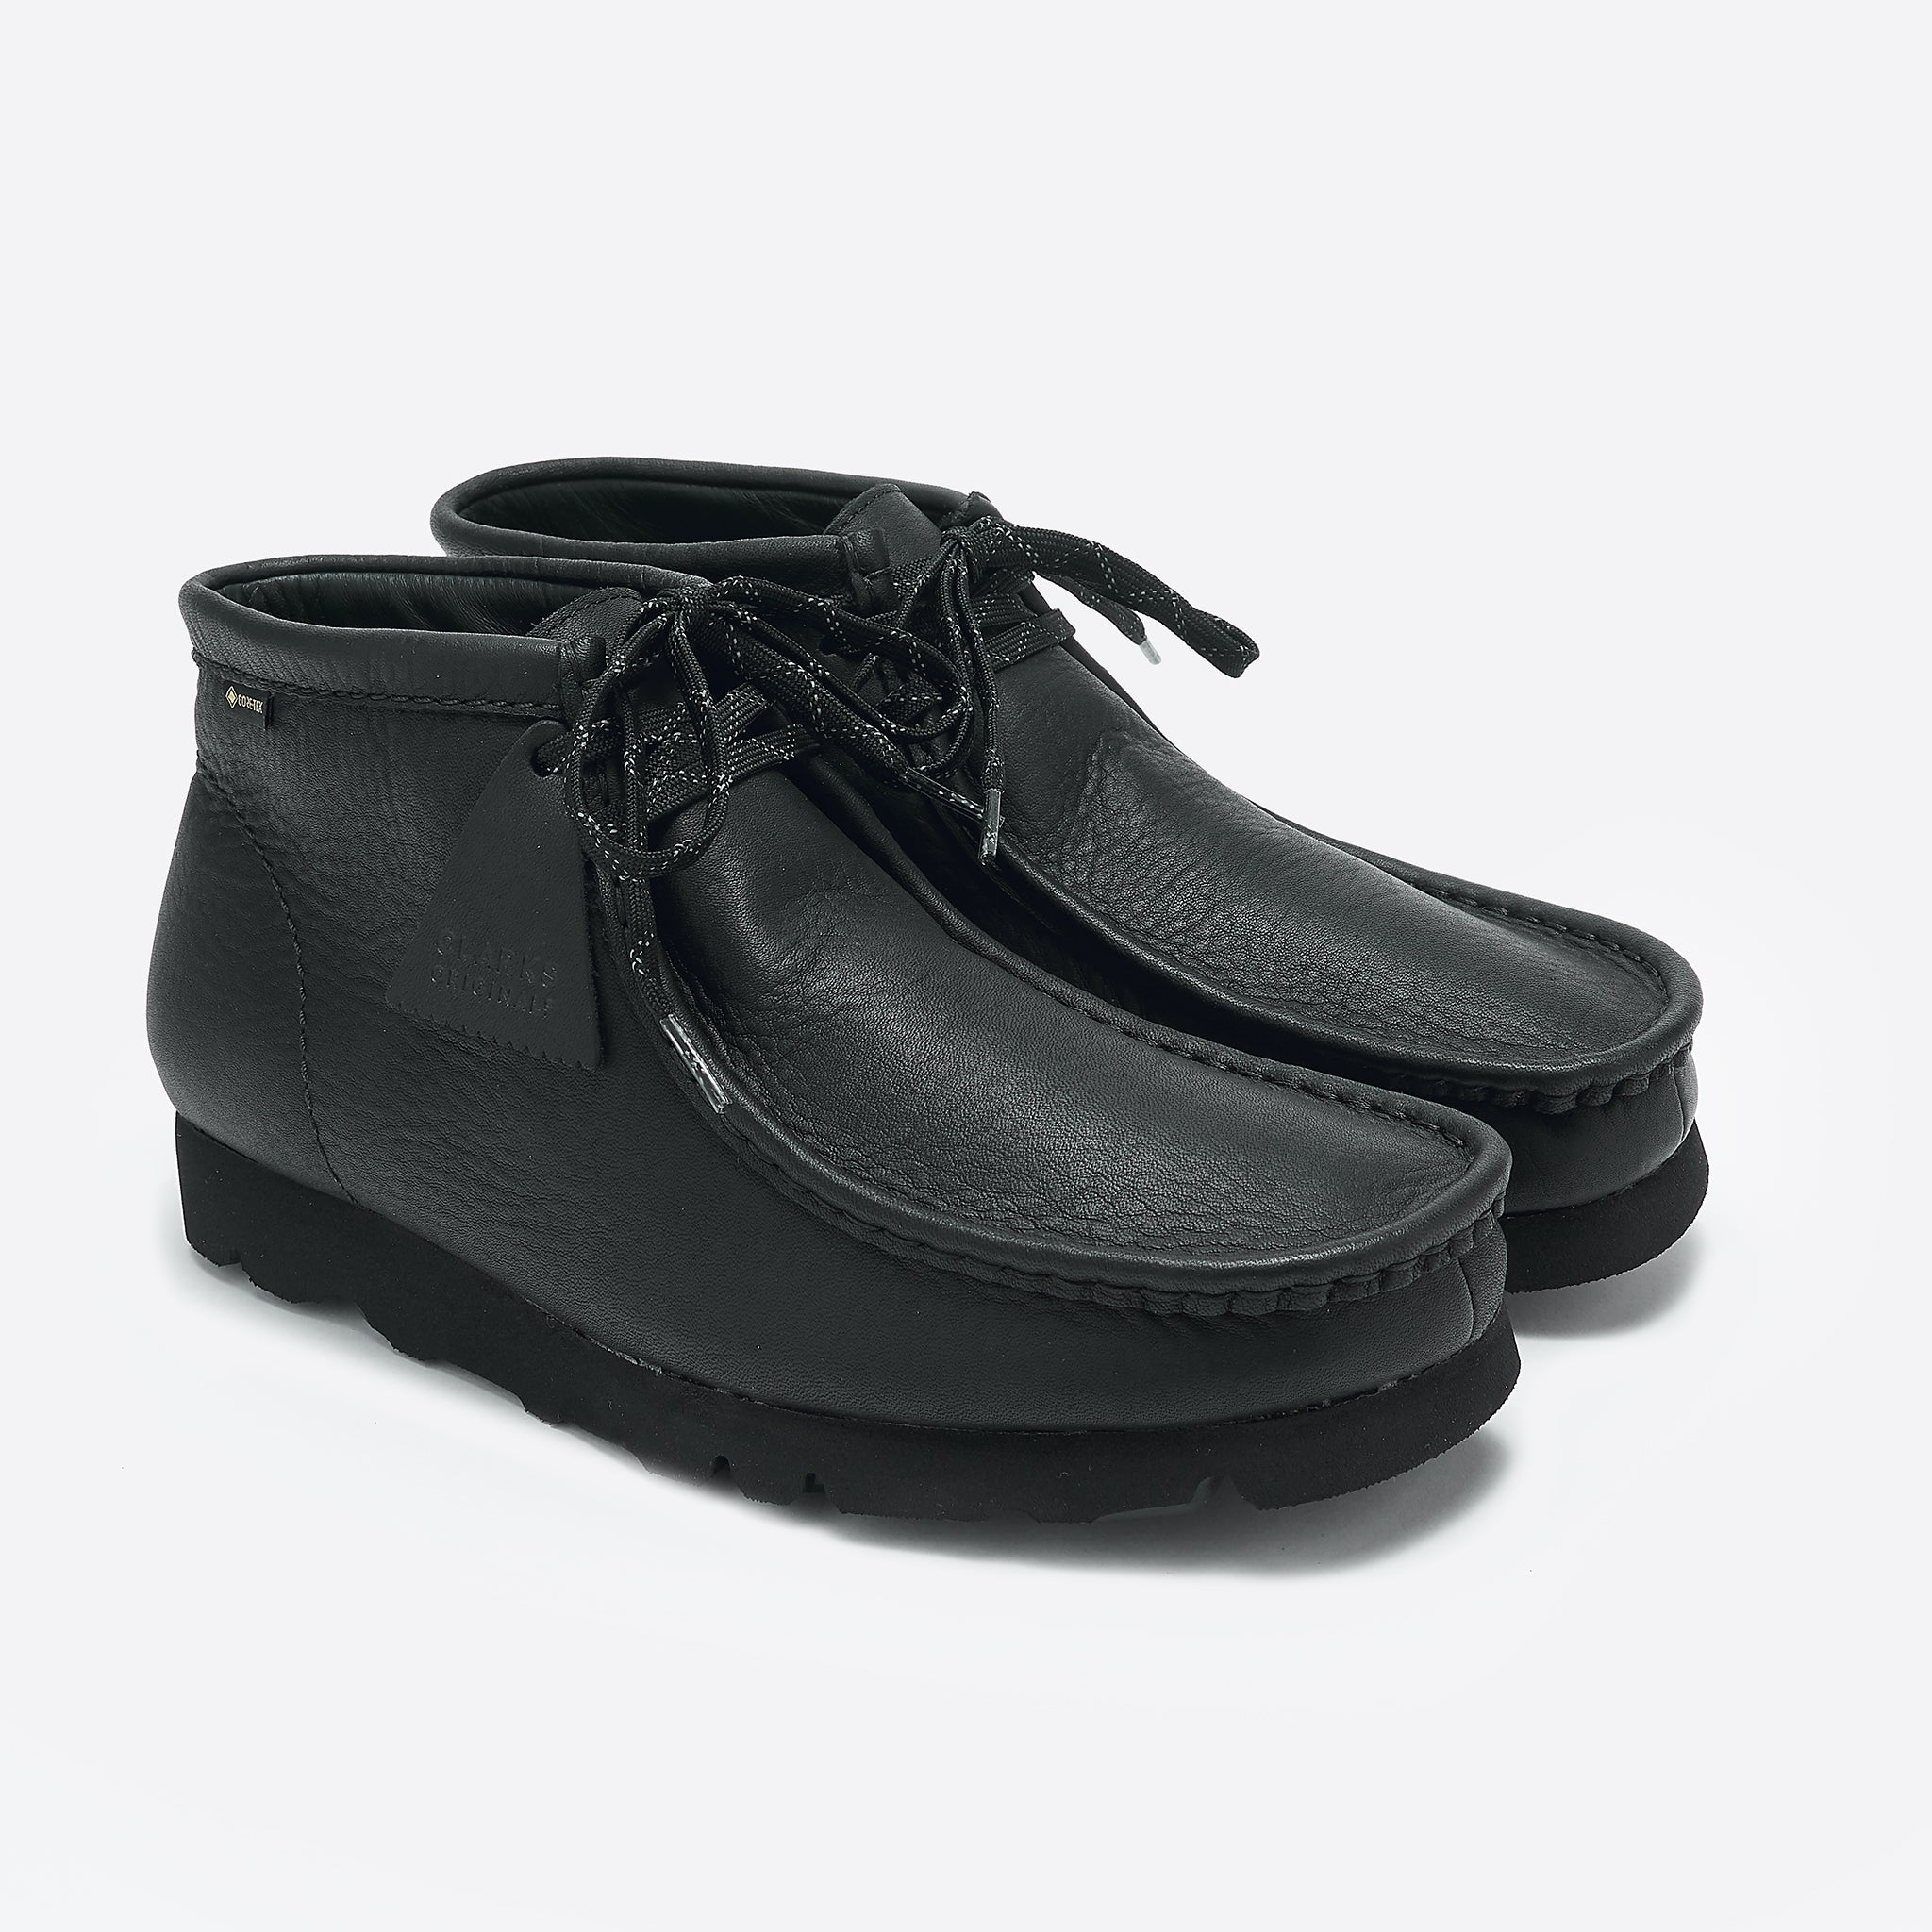 Clarks Originals Wallabee GTX in Black Leather